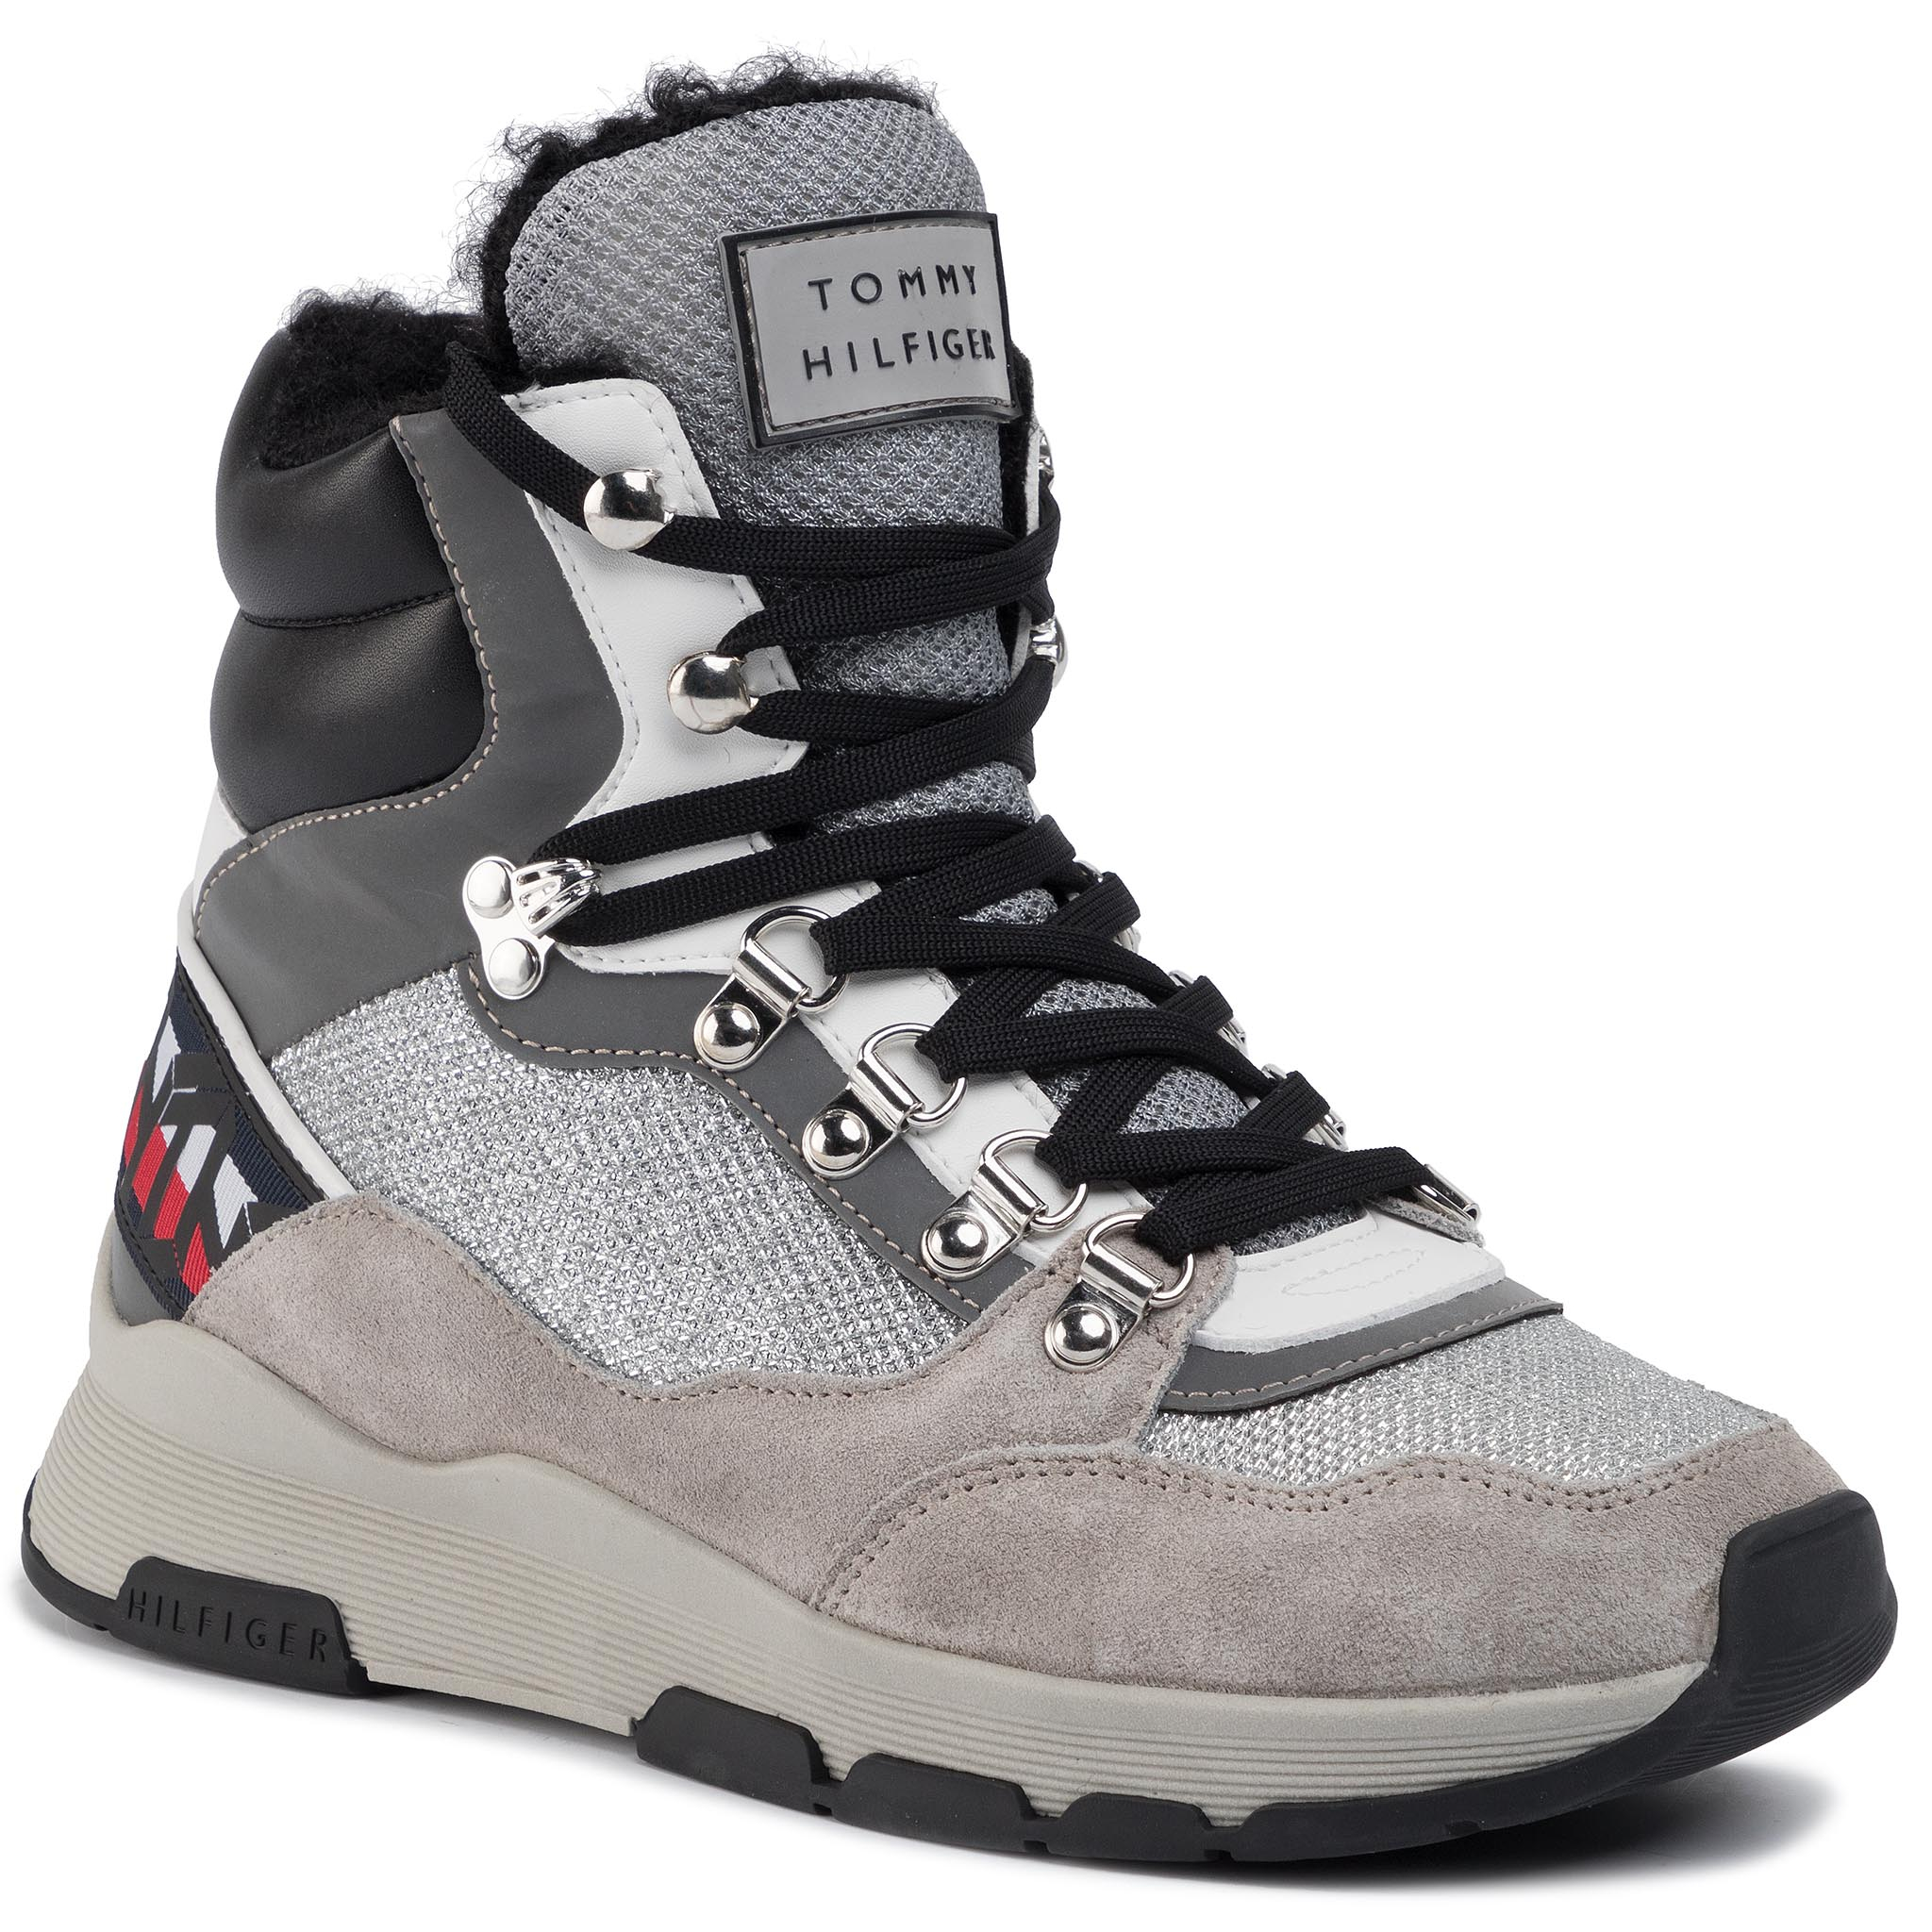 Sneakers TOMMY HILFIGER - Tommy Sparkle Sporty Boot FW0FW04635 Metallic Silver 0K4